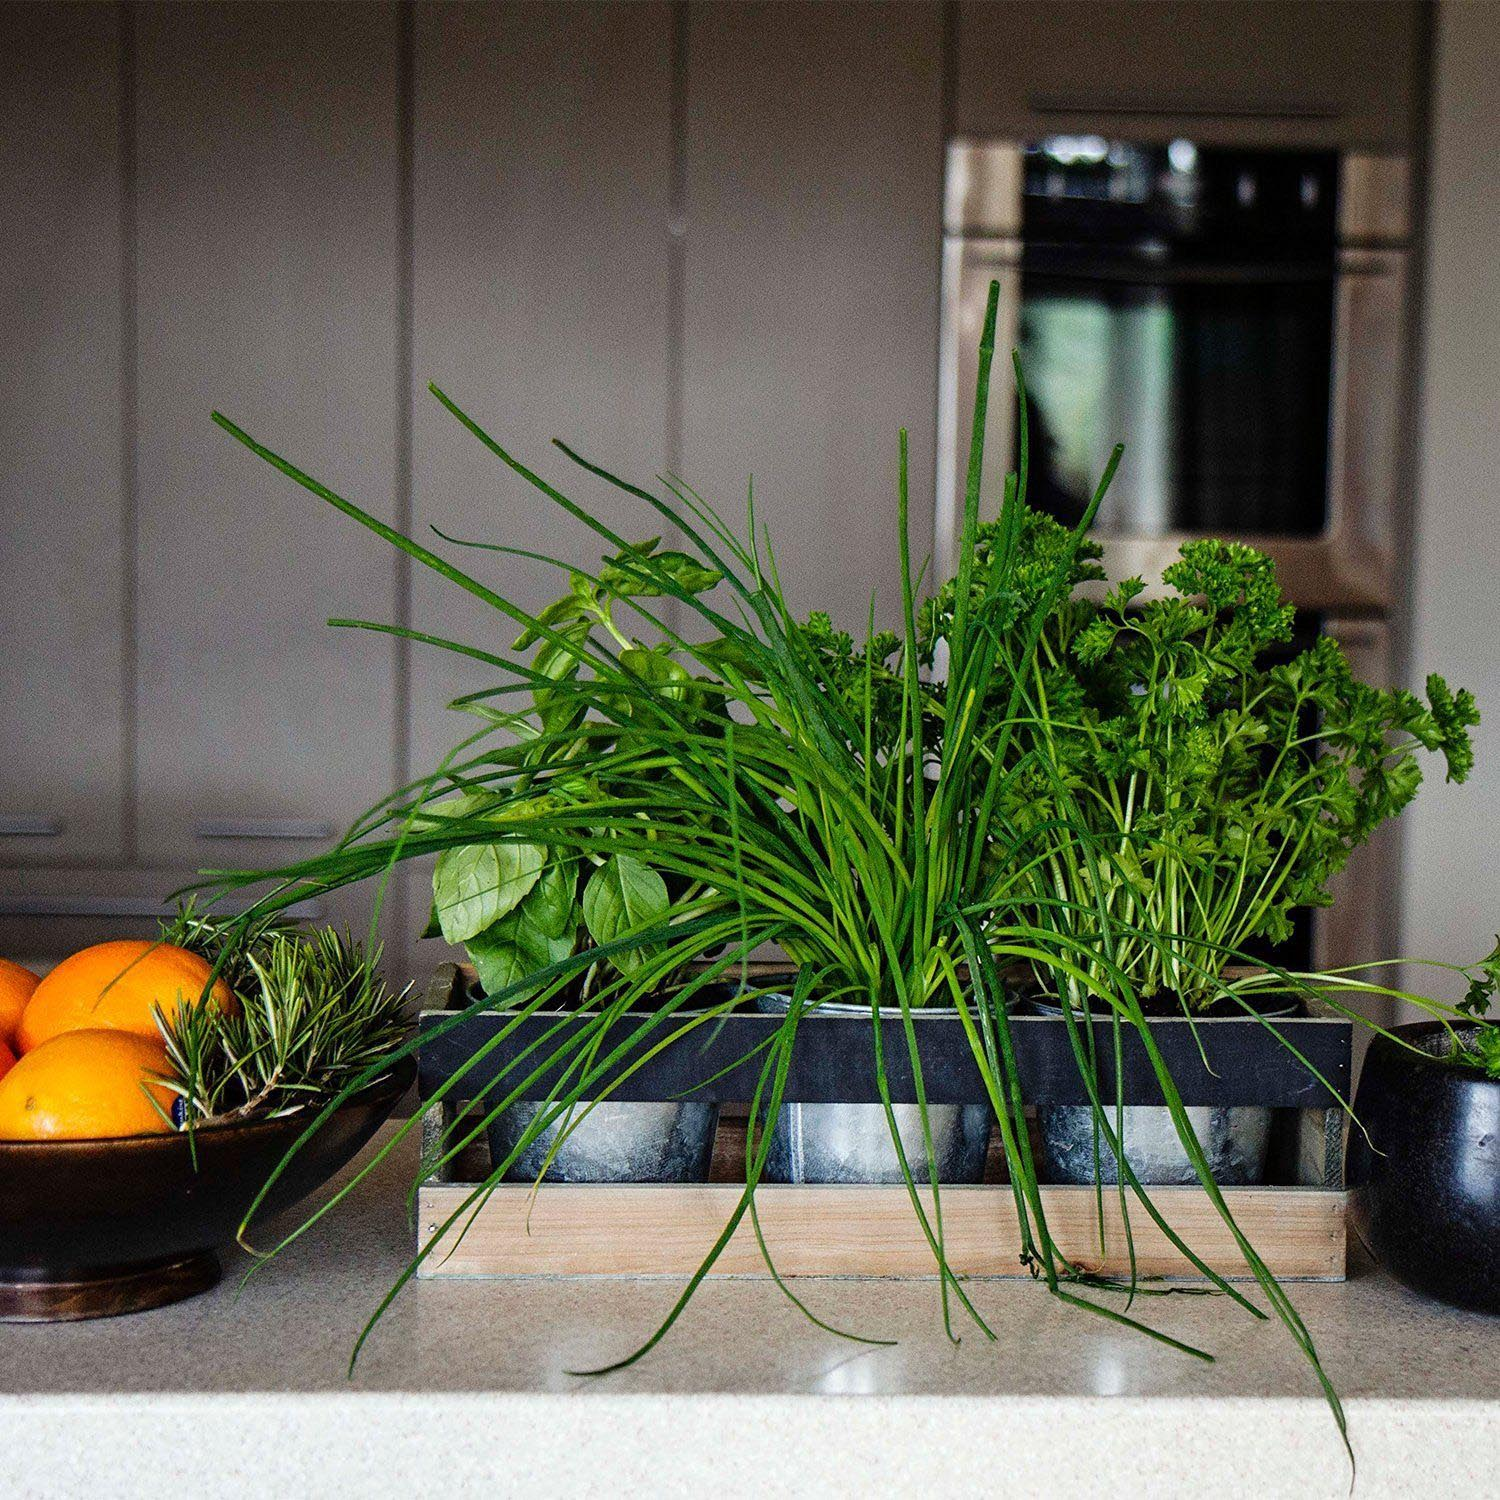 Kitchen herb garden windowsill planter garden design ideas Kitchen windowsill herb pots